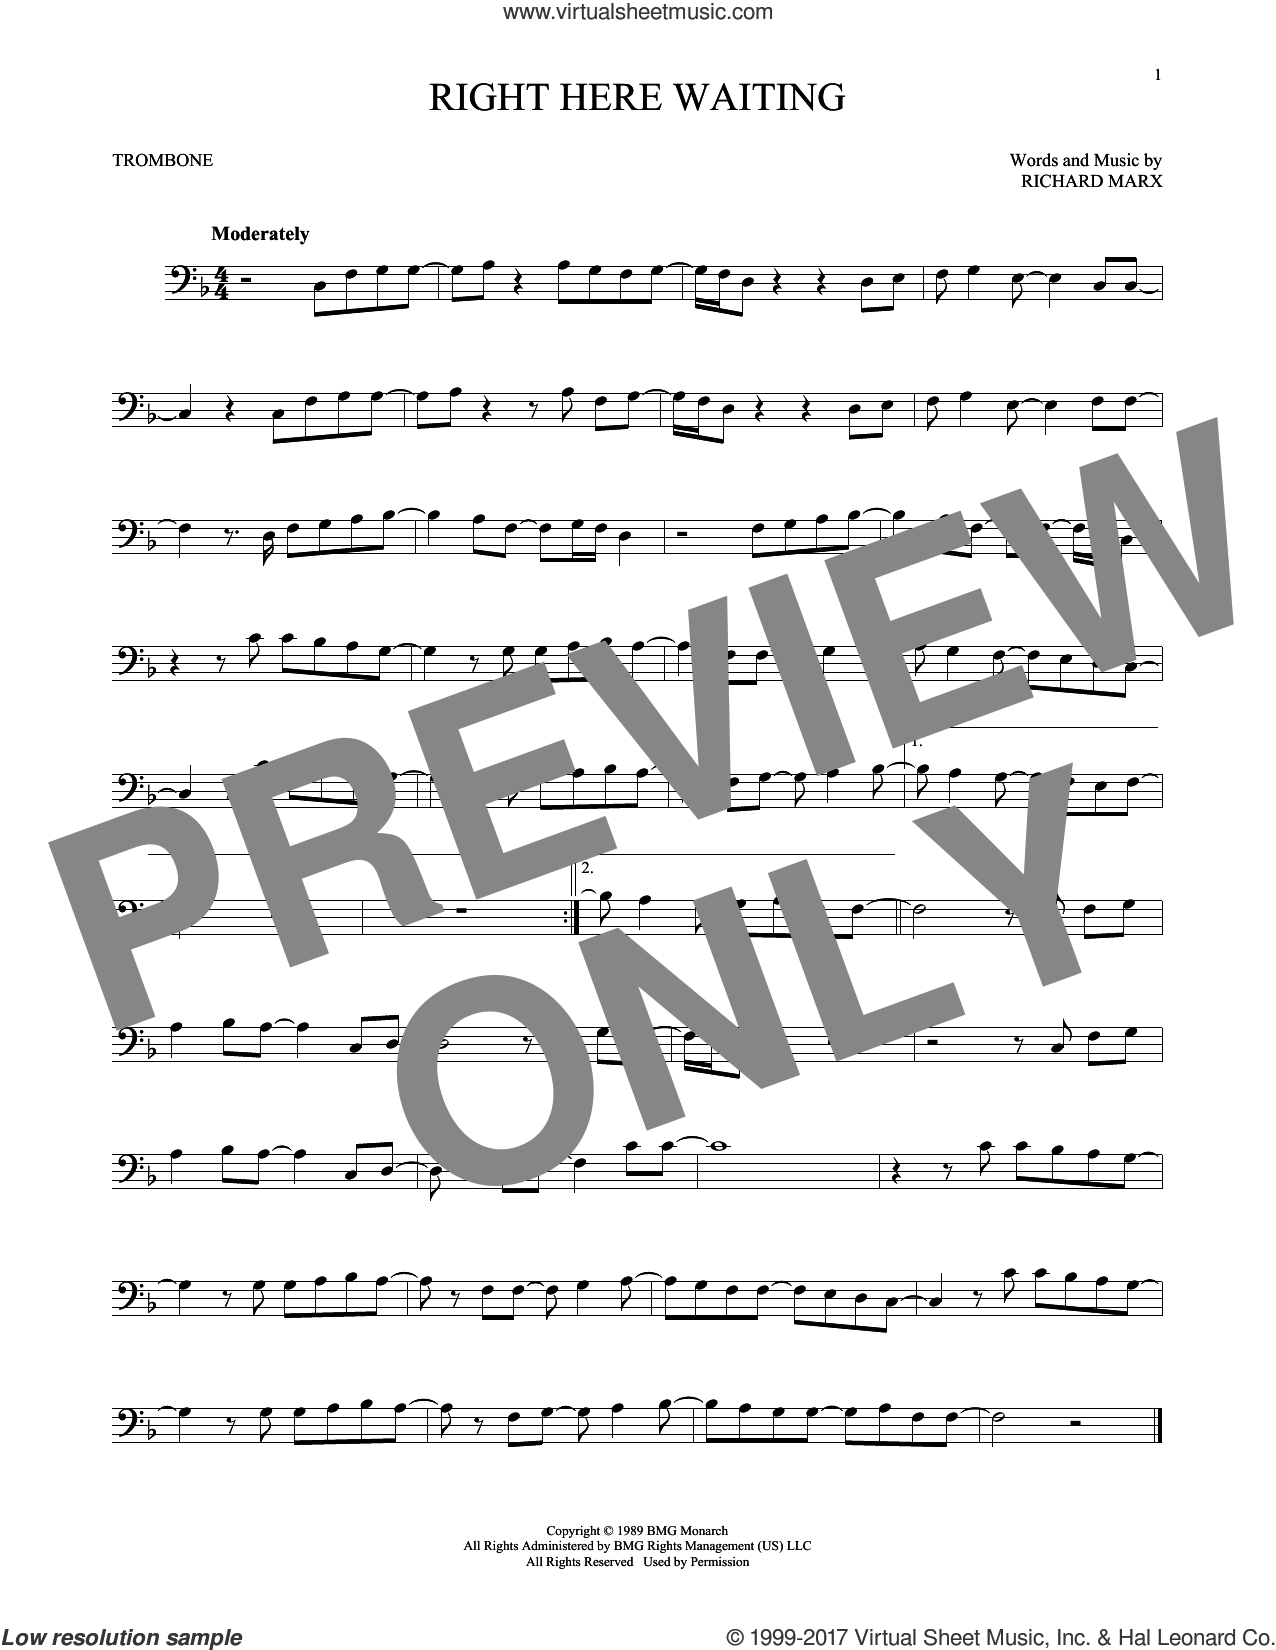 Right Here Waiting sheet music for trombone solo by Richard Marx, intermediate skill level